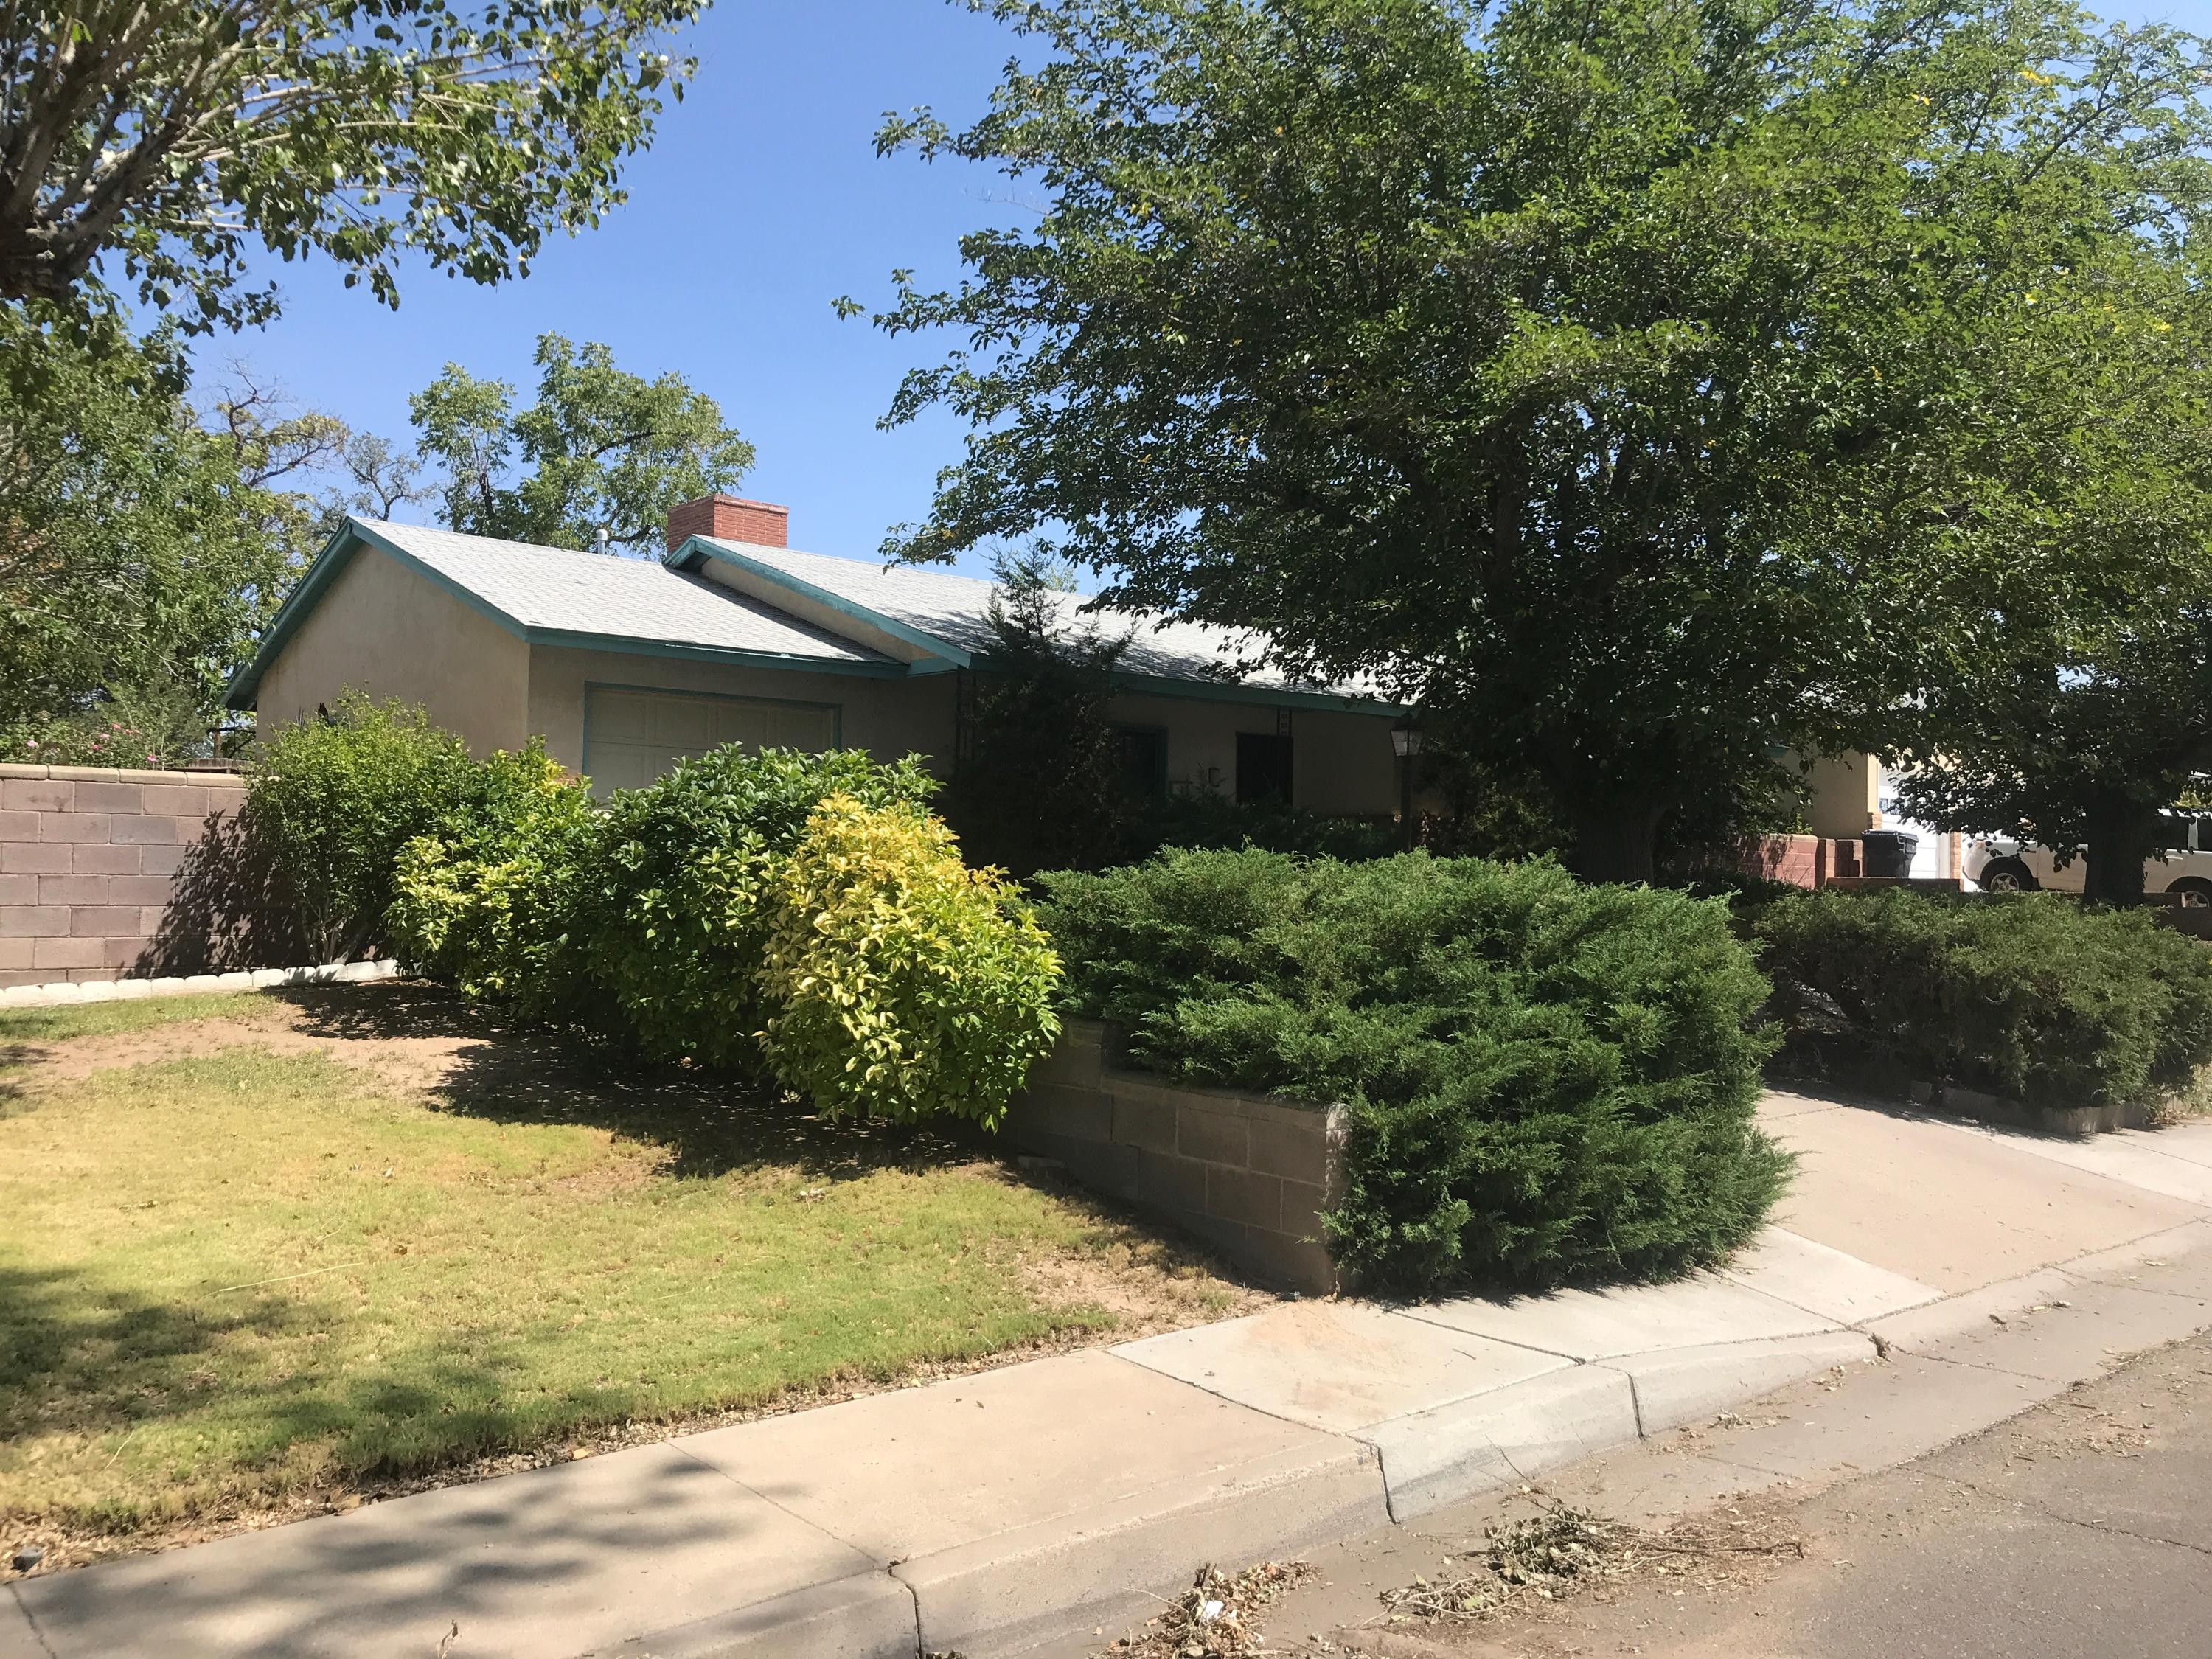 Great location--right across from a beautiful  park.  Three bedrooms and a bath and three quarters provides space to accommodate families, roommates, or office space for working at home.  Large living room with a wood burning fireplace merges into spacious dining area.  An enclosed laundry room has been in the garage, leaving plenty of area to park.  the kitchen has generous storage.  outside in front are two large shade trees a covered entry porch.  The backyard is very large with mountain views and ready for your imagination.  All this, plus refrigerated air for hot summer days.  In addition, the roof was replaced within the last month.